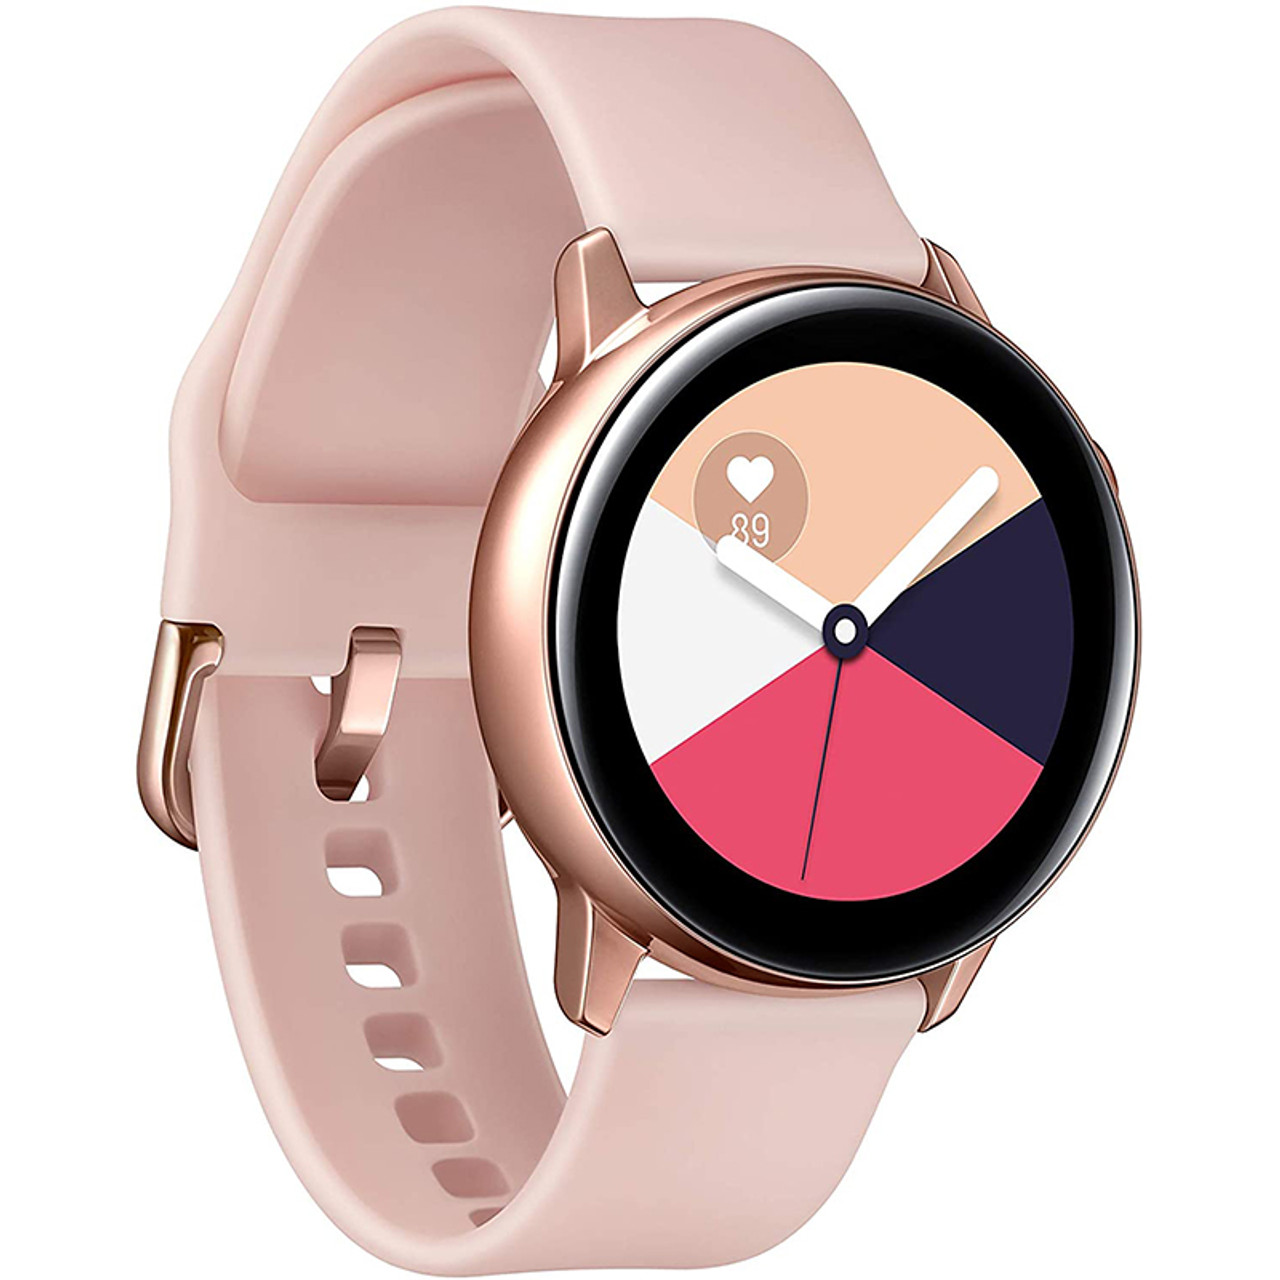 Samsung Galaxy Watch Active (40MM, GPS, Bluetooth) Smart Watch with Fitness Tracking, and Sleep Analysis - Rose Gold